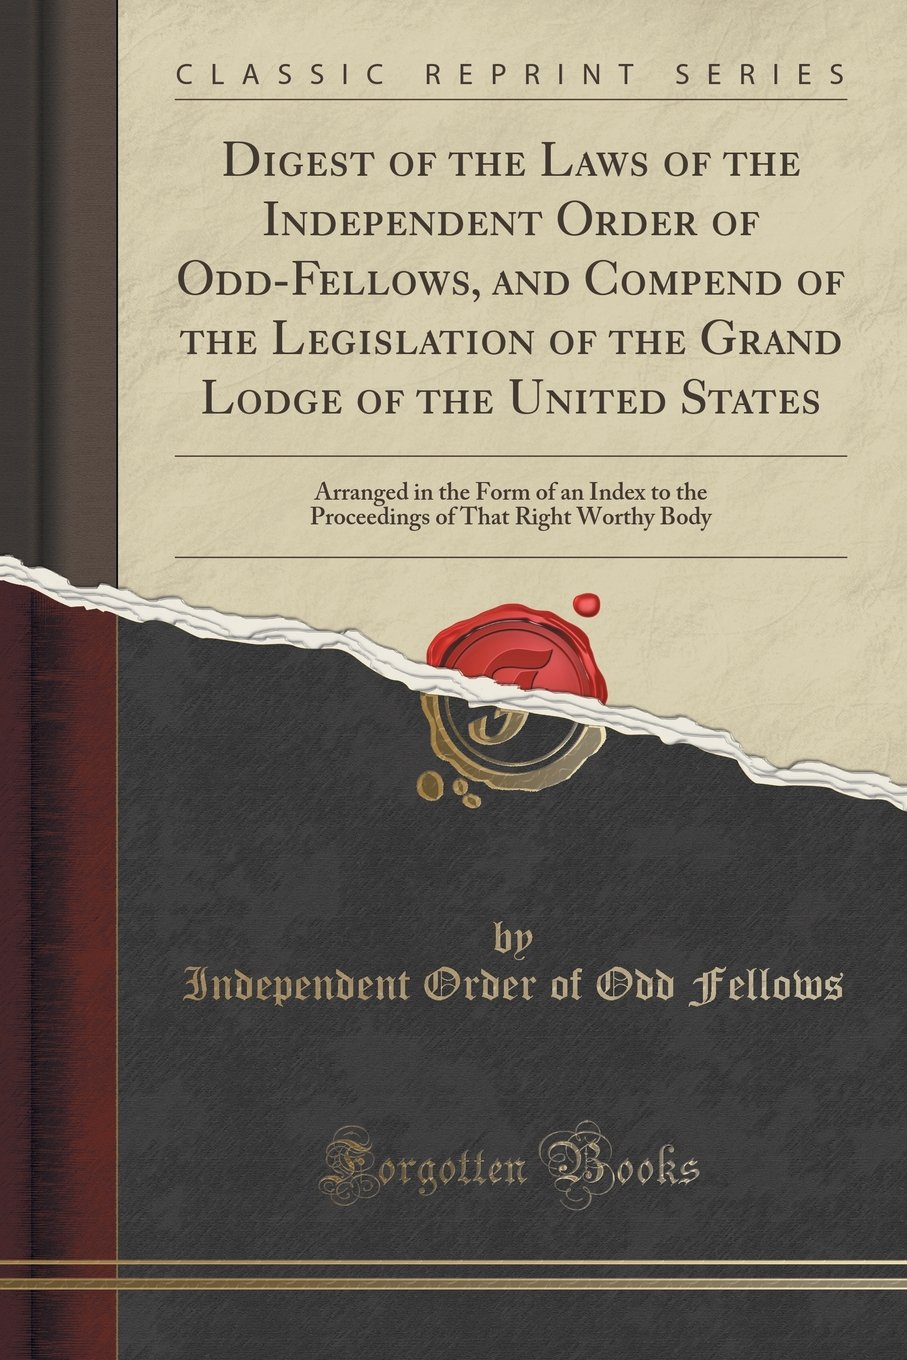 Digest of the Laws of the Independent Order of Odd-Fellows, and Compend of the Legislation of the Grand Lodge of the United States: Arranged in the ... of That Right Worthy Body (Classic Reprint) pdf epub